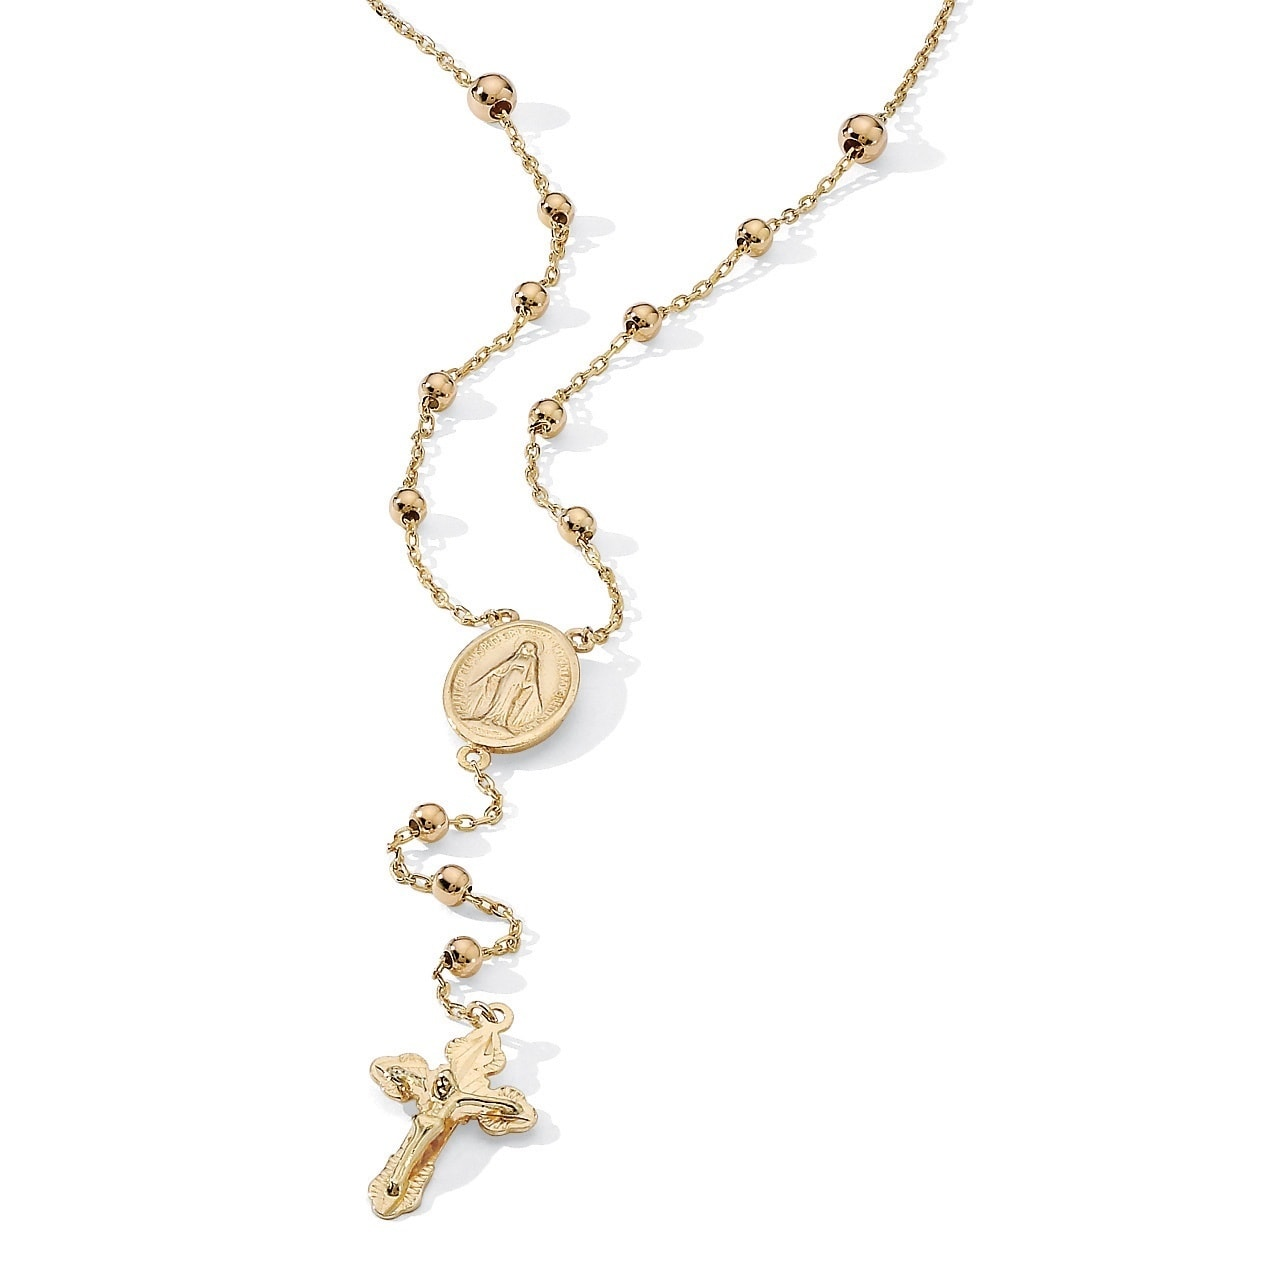 Palm Beach Rosary Style Necklace in 18k Gold Over Sterlin...